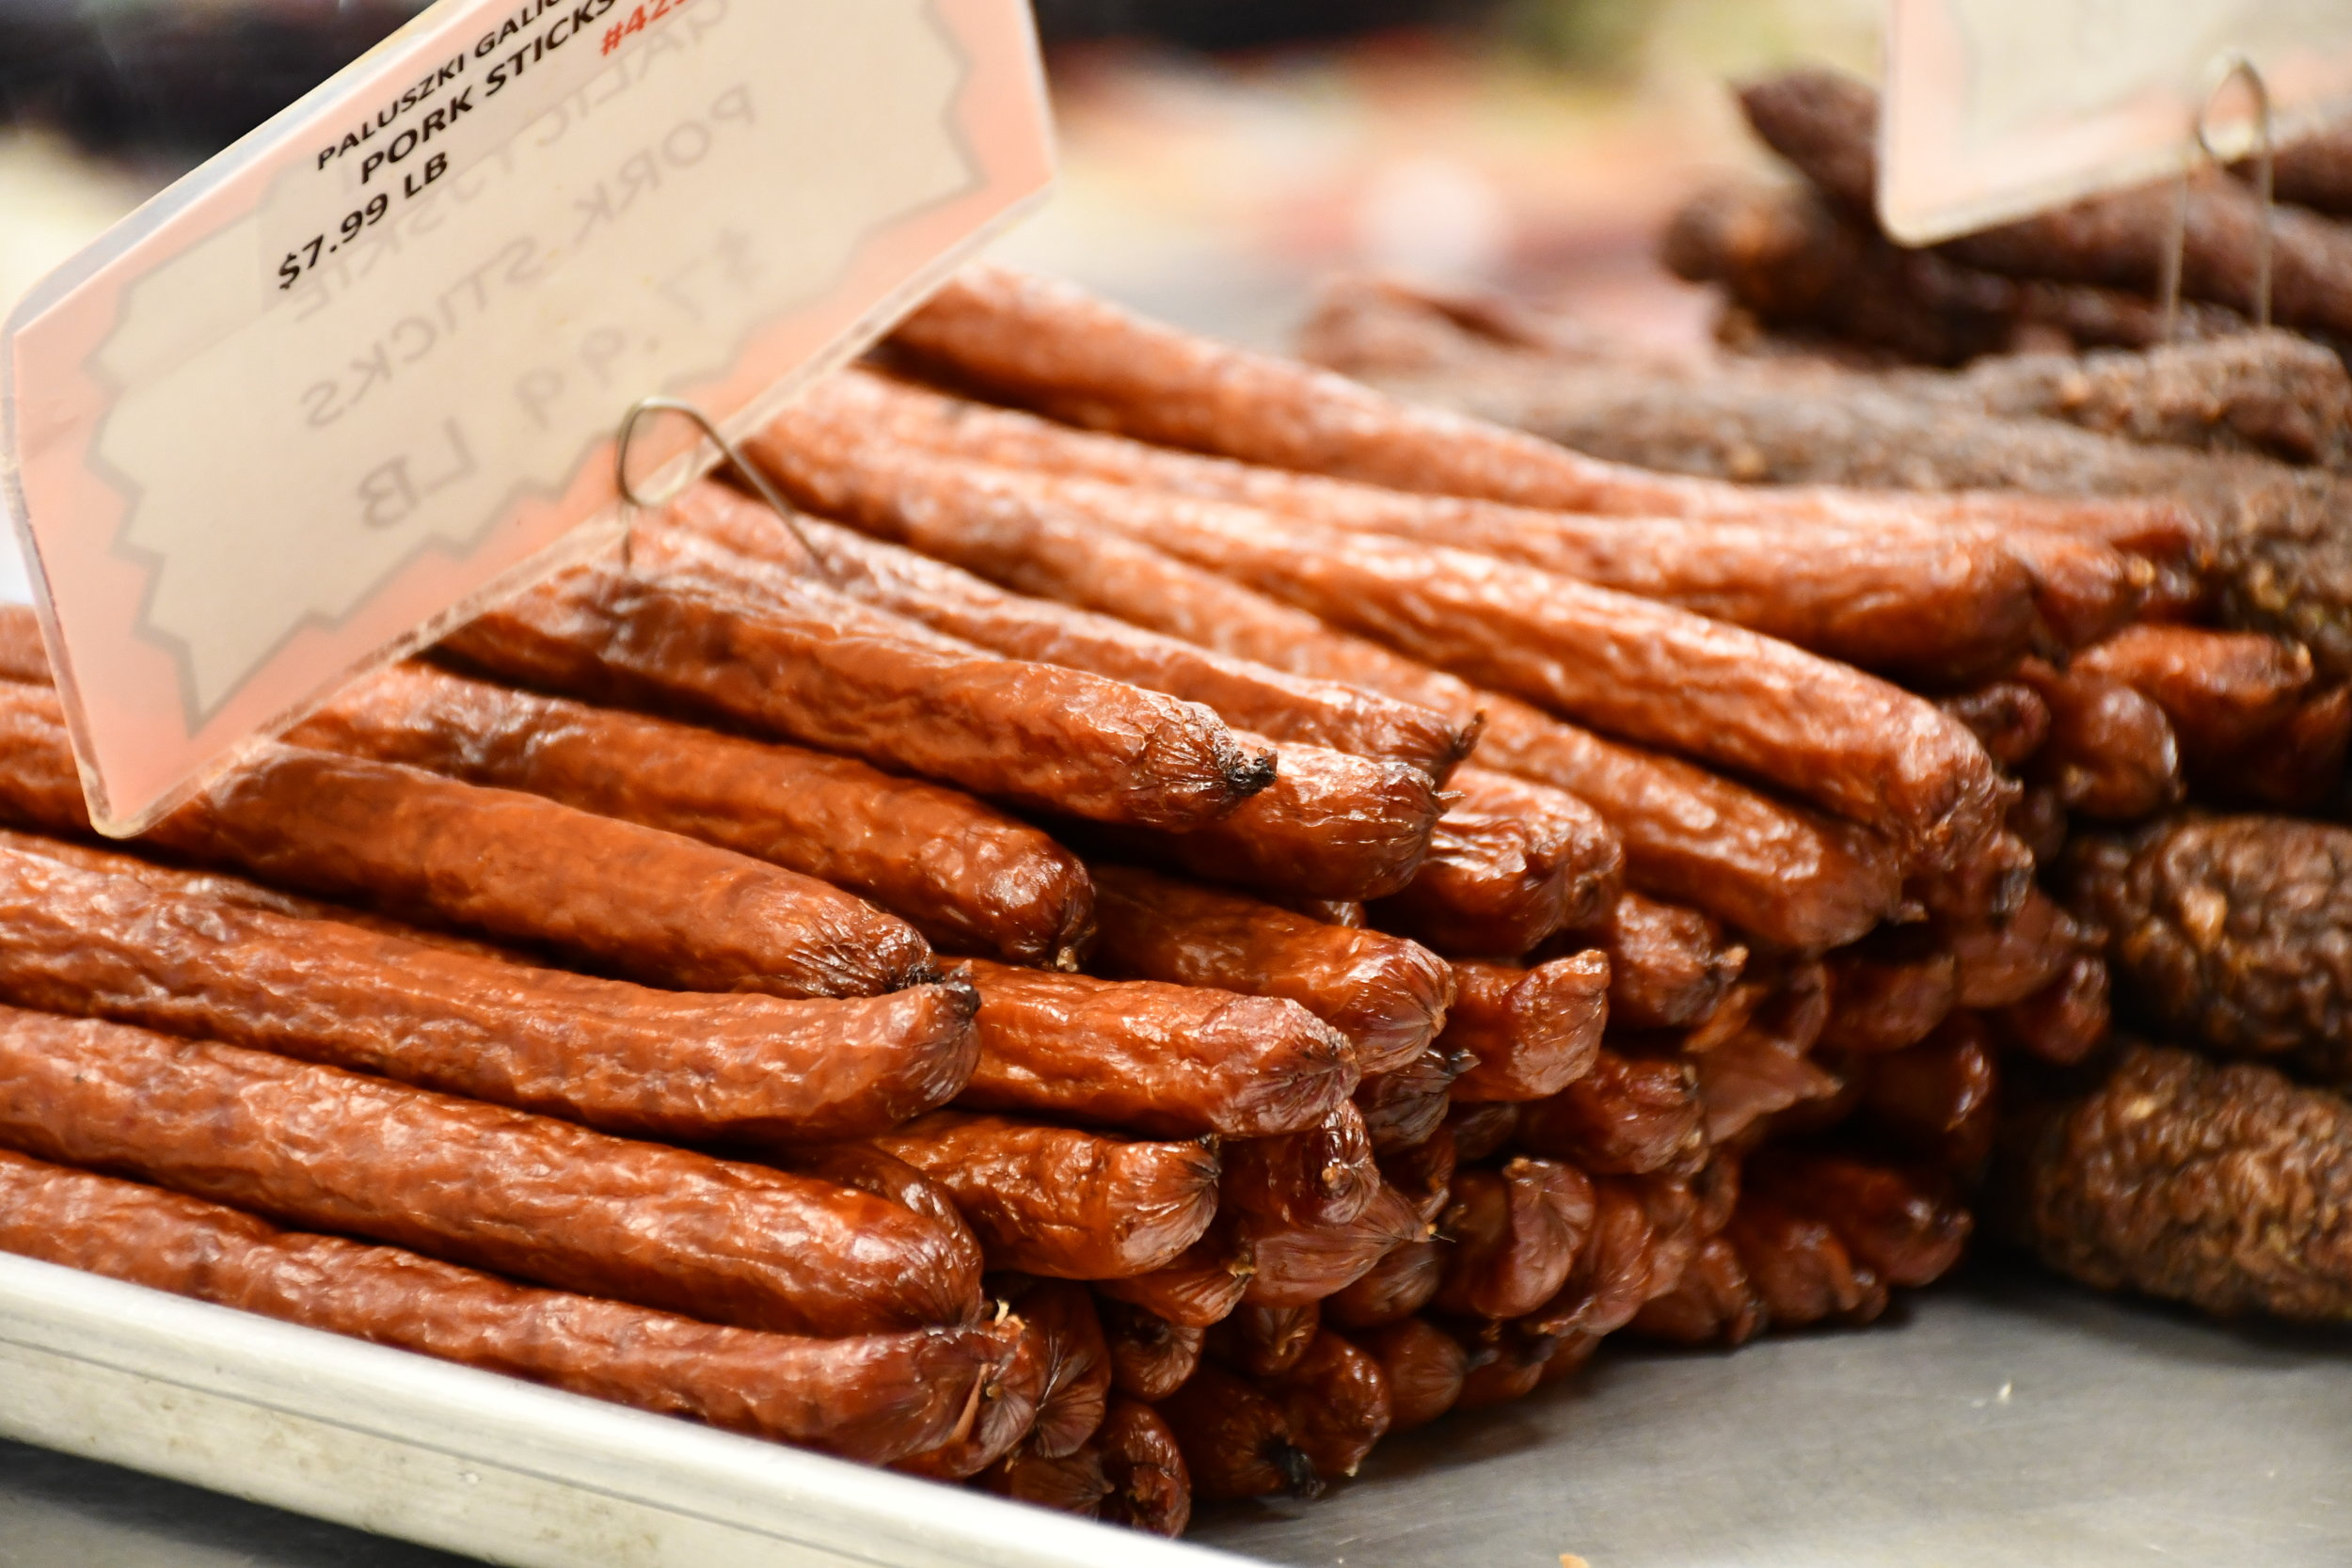 Polish Smoked Meats Chicago | Smoked Meats at Lassak Market & Deli